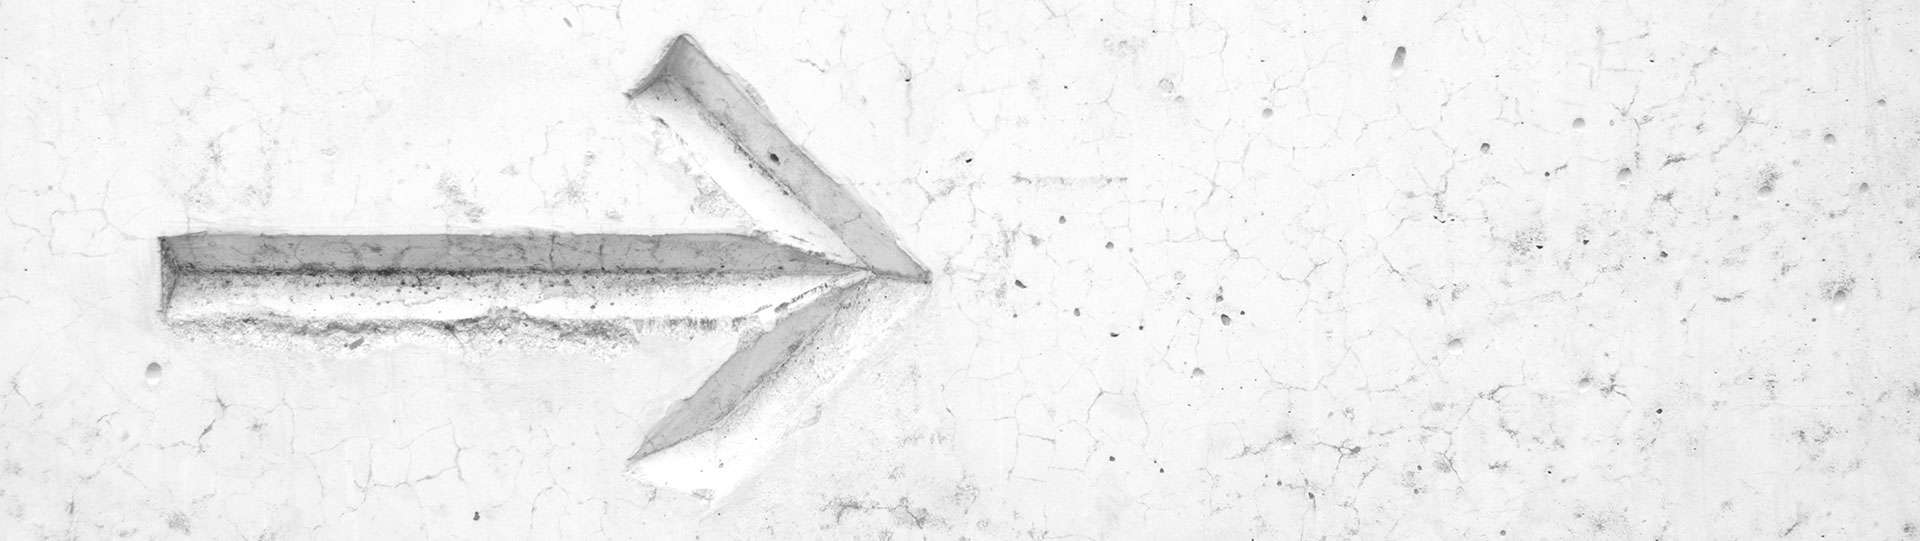 white arrow etched in stone